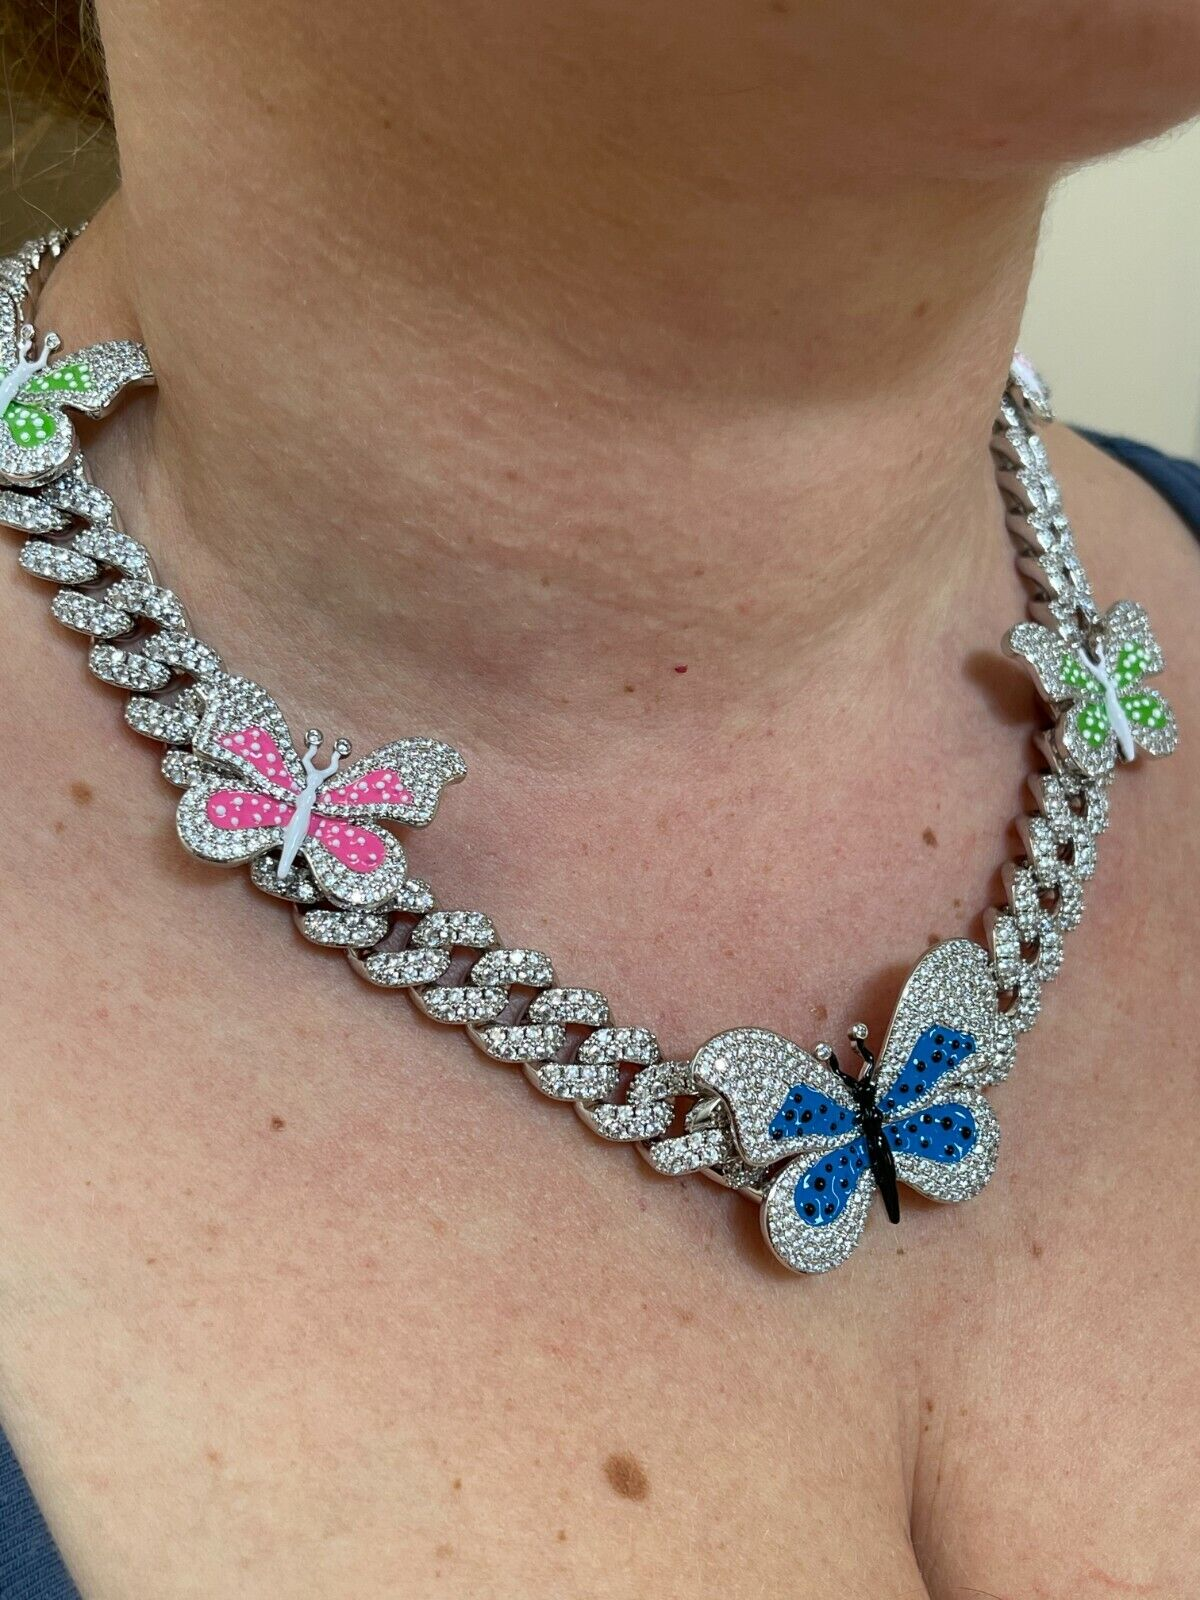 Real Hip Hop 12mm Miami Cuban Chain Choker Necklace Butterfly Iced Silver Choker 6